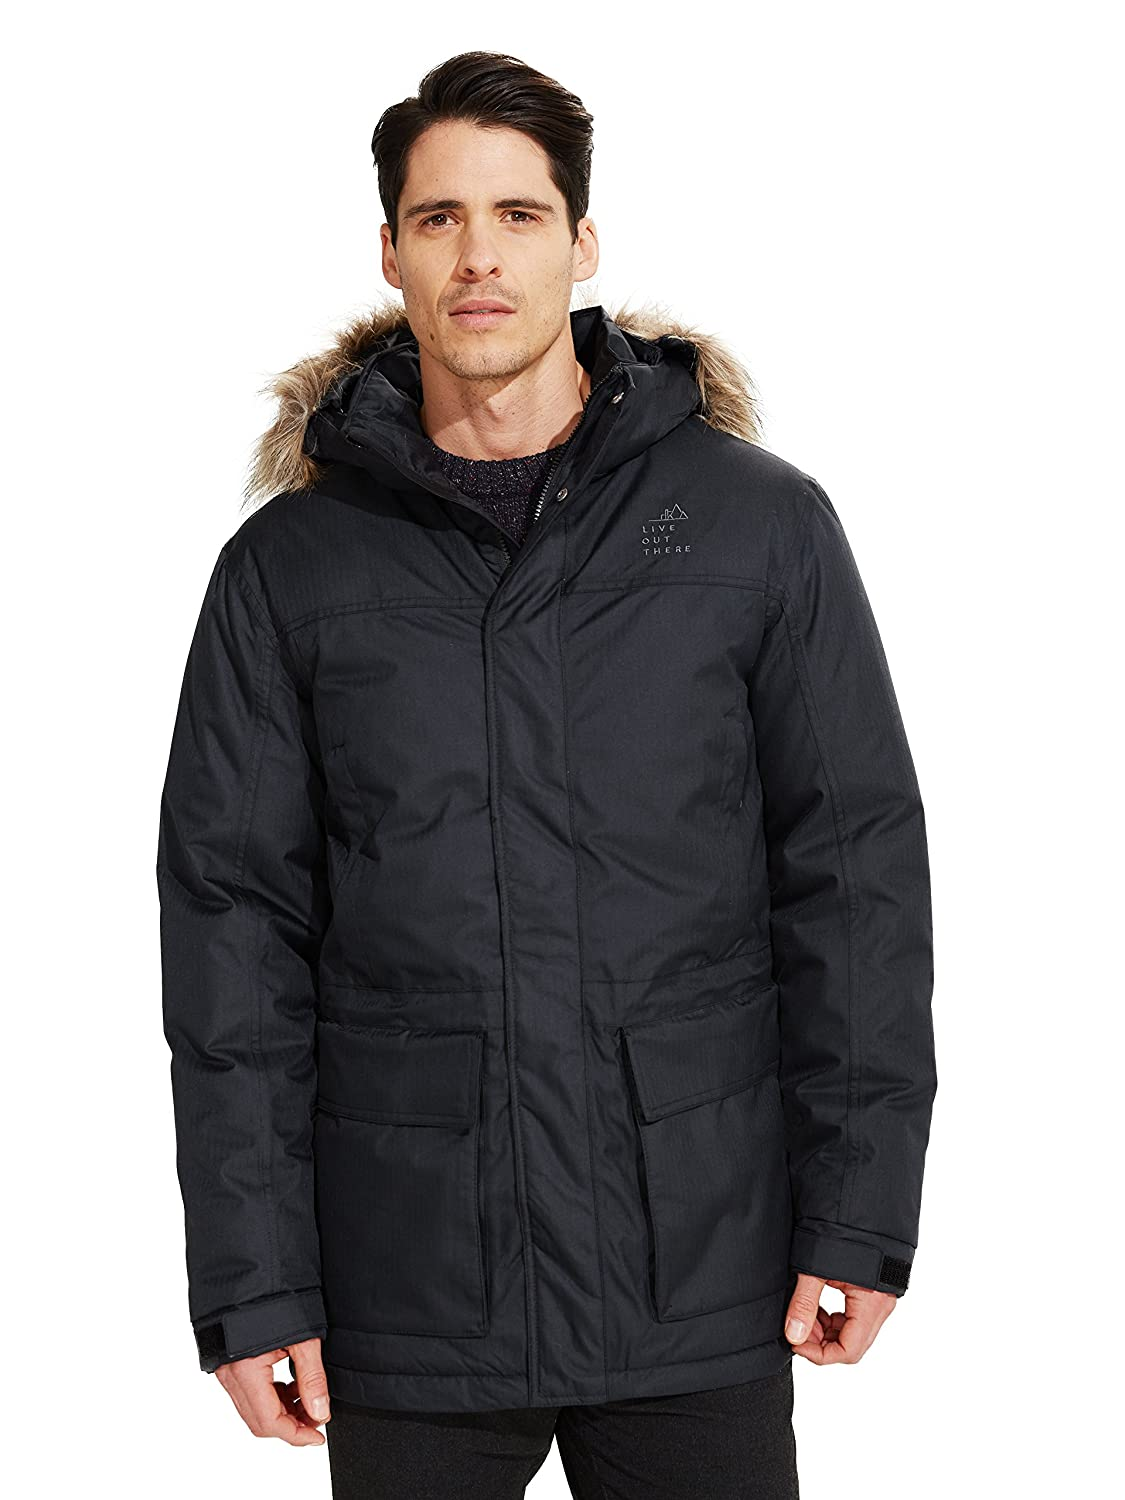 Live Out There OUTERWEAR メンズ B076TH2N12  Stretch Limo M